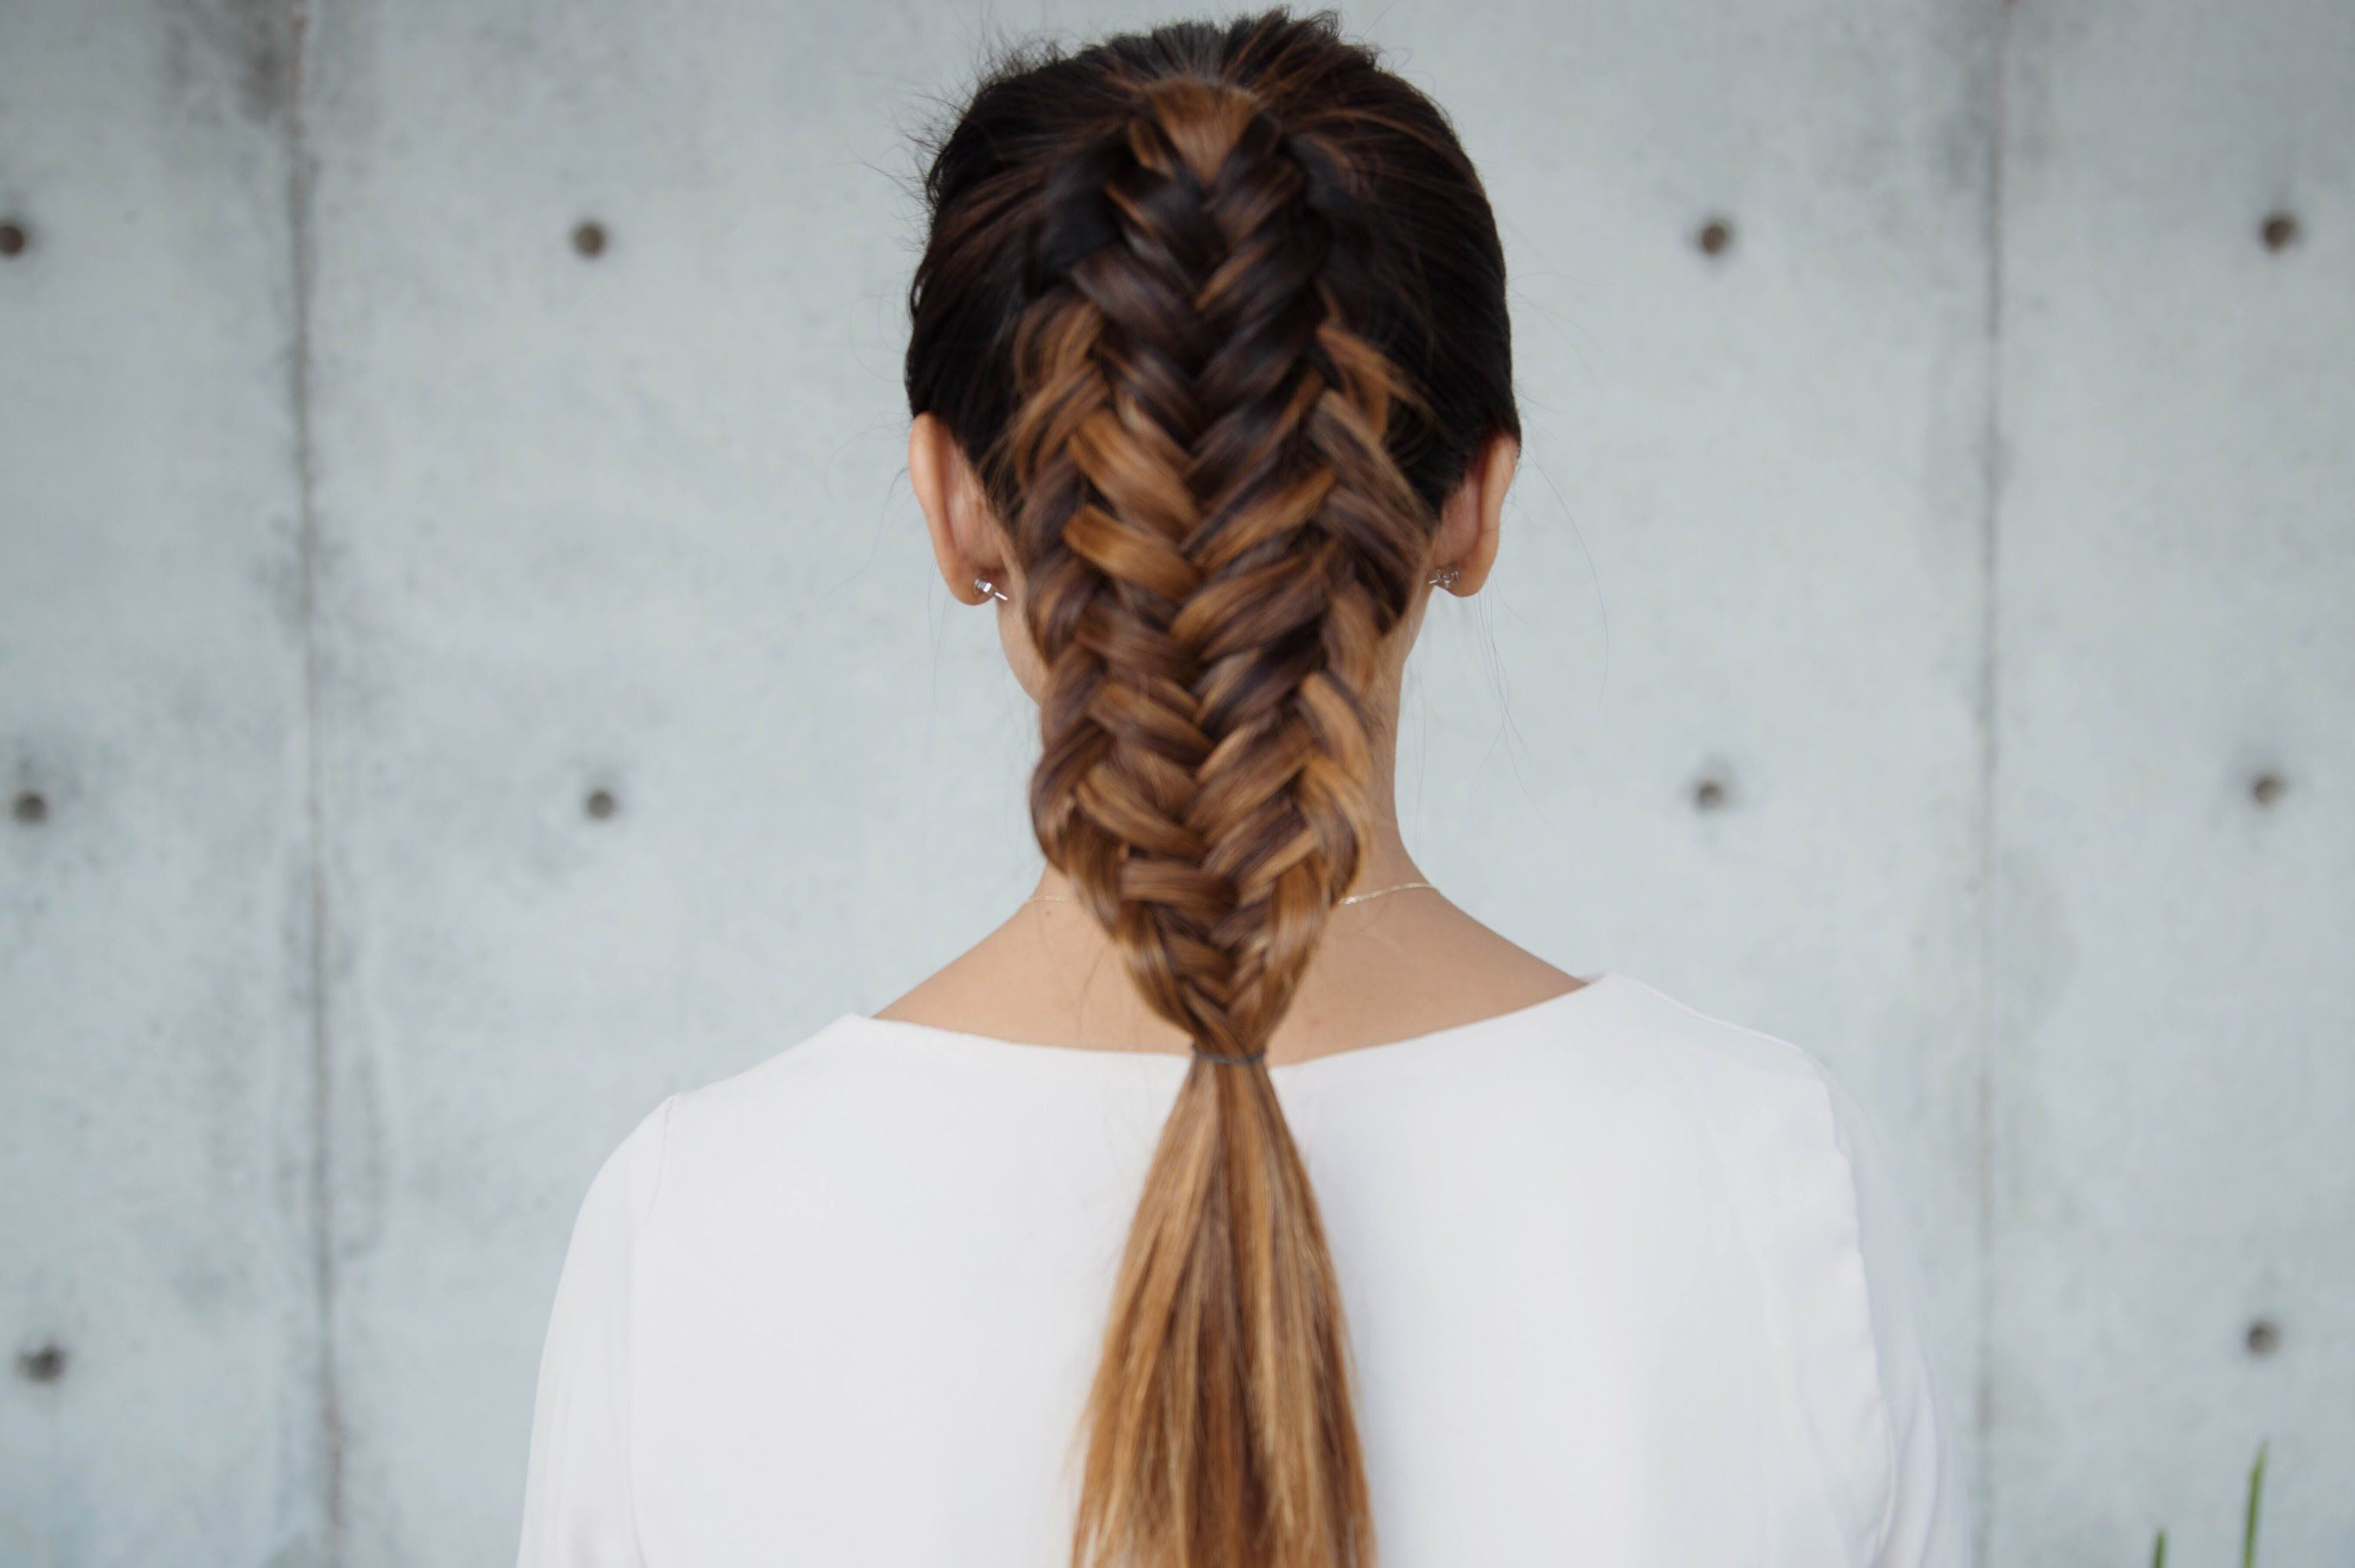 Half up hairdo with fishtail braid #fishtail #braids : Half up hairdo with fishtail braid #fishtail #braids #Half #hairdo #with # fishtail Braids casual # fishtail Braids updo